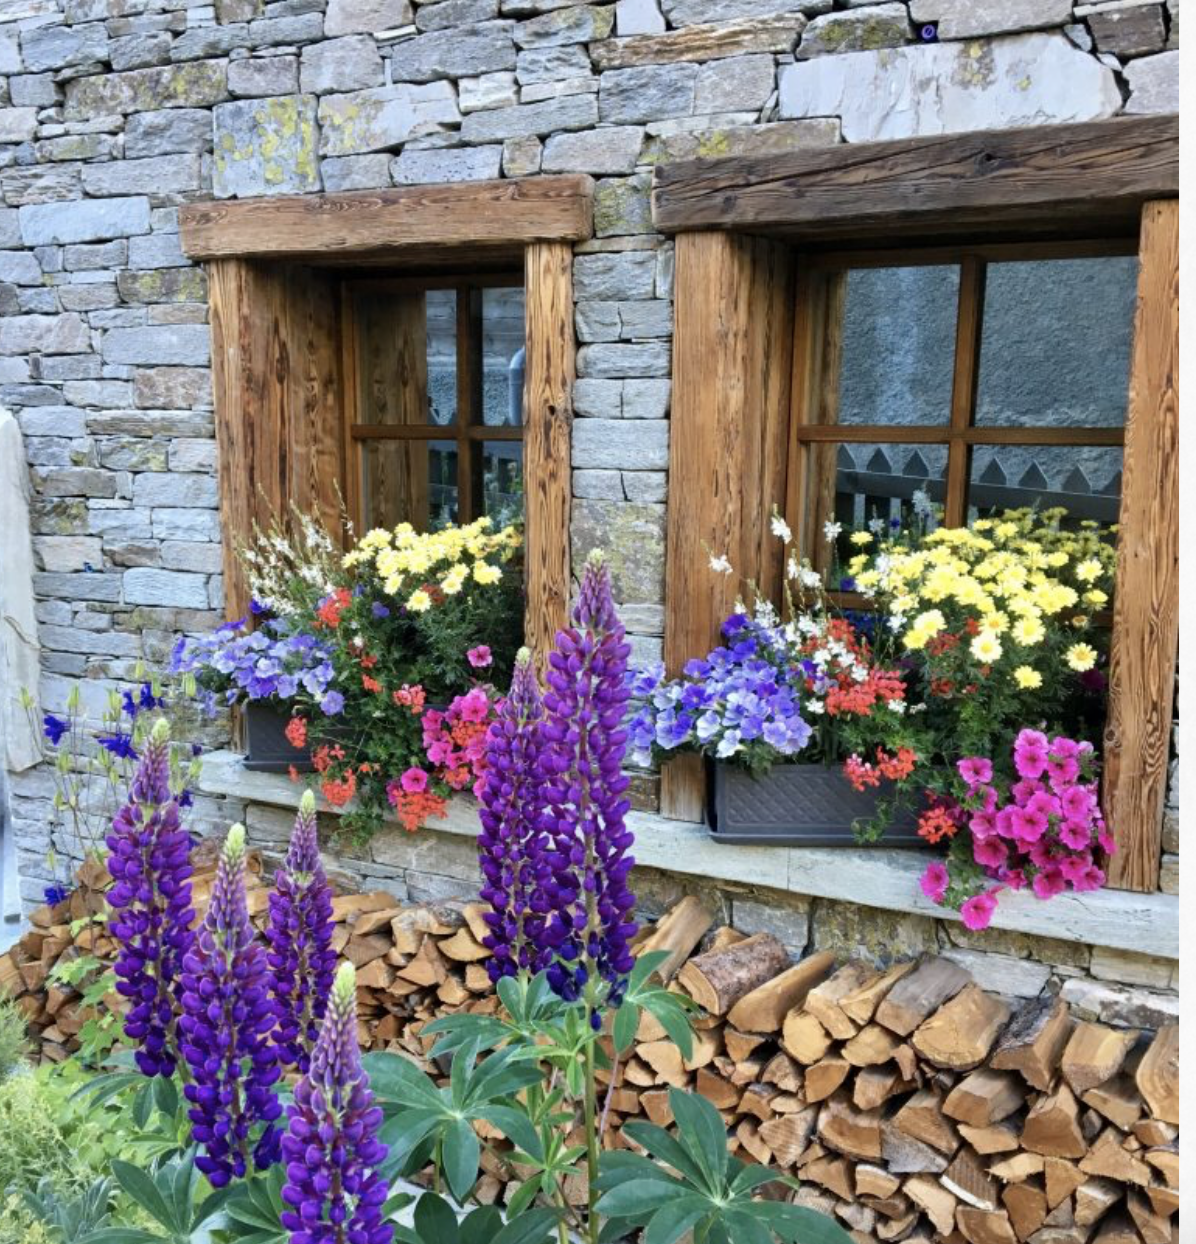 Alpine flowers and charming window boxes